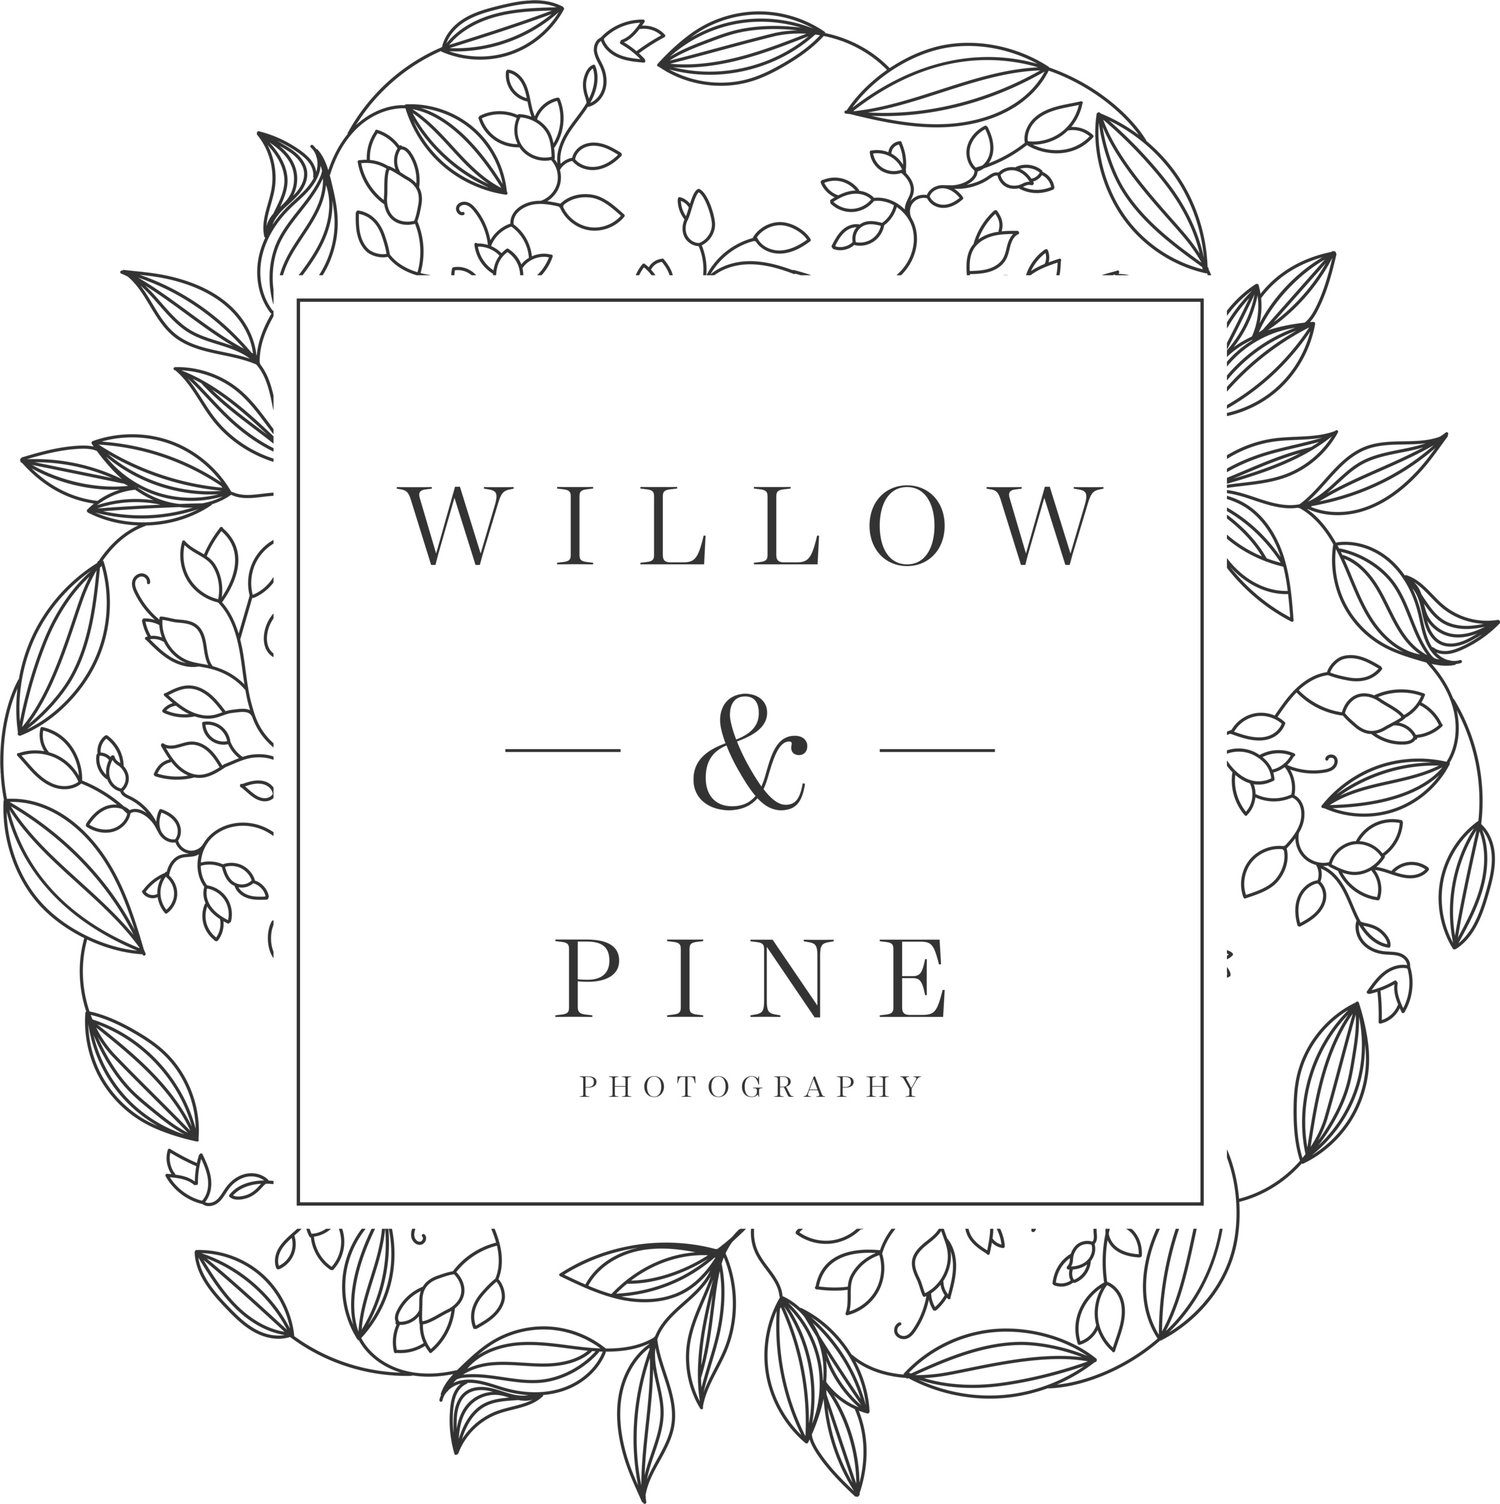 Willow & Pine